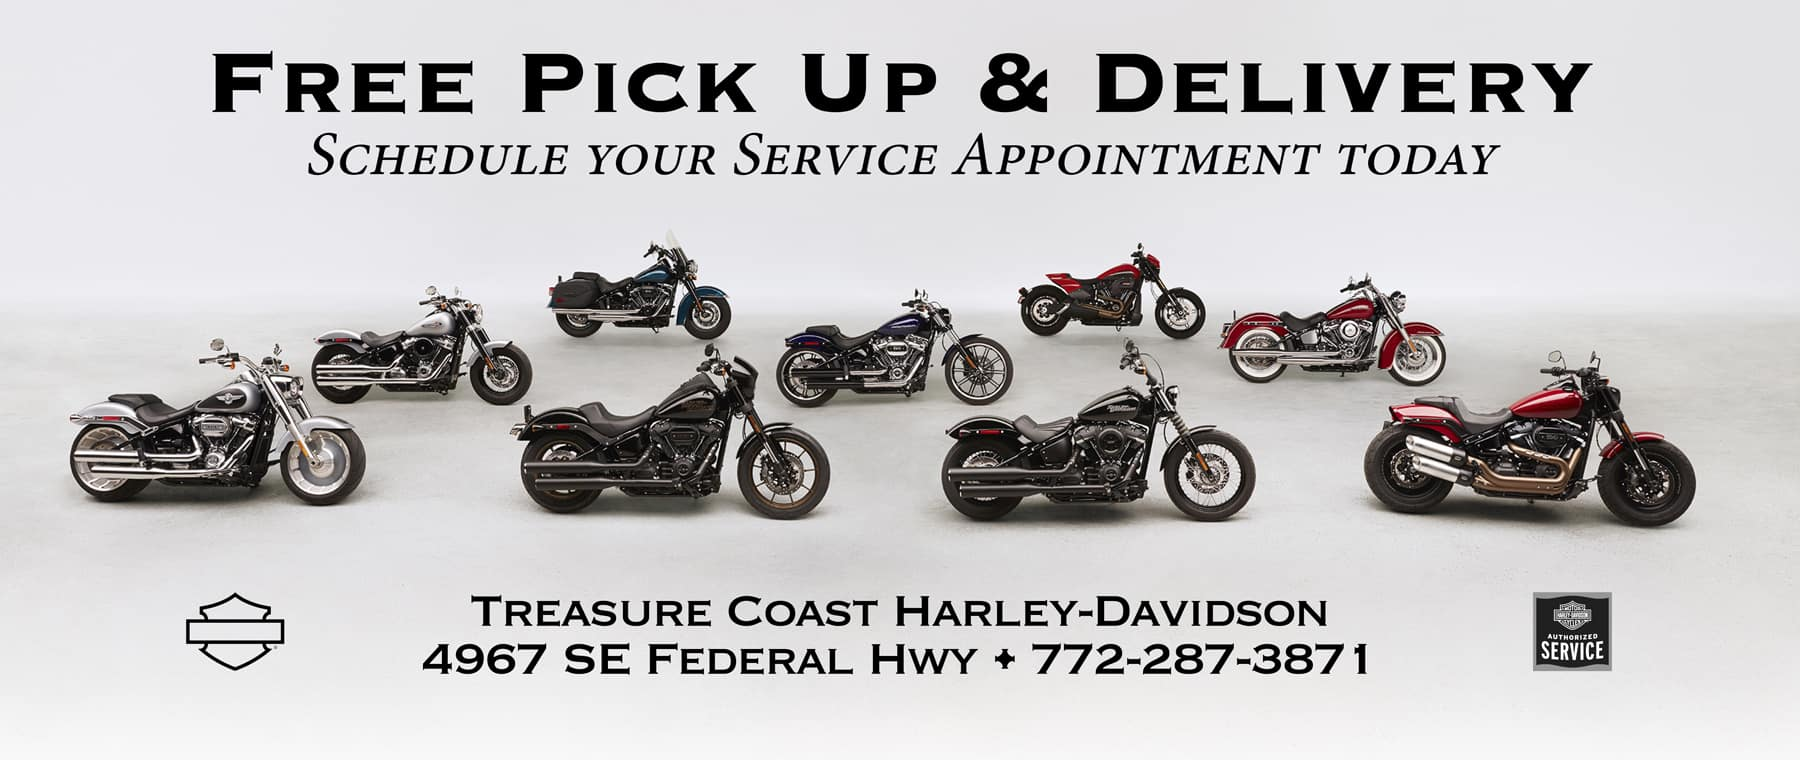 Harley-Davidson Service Free Pick Up and Delivery in Stuart FL